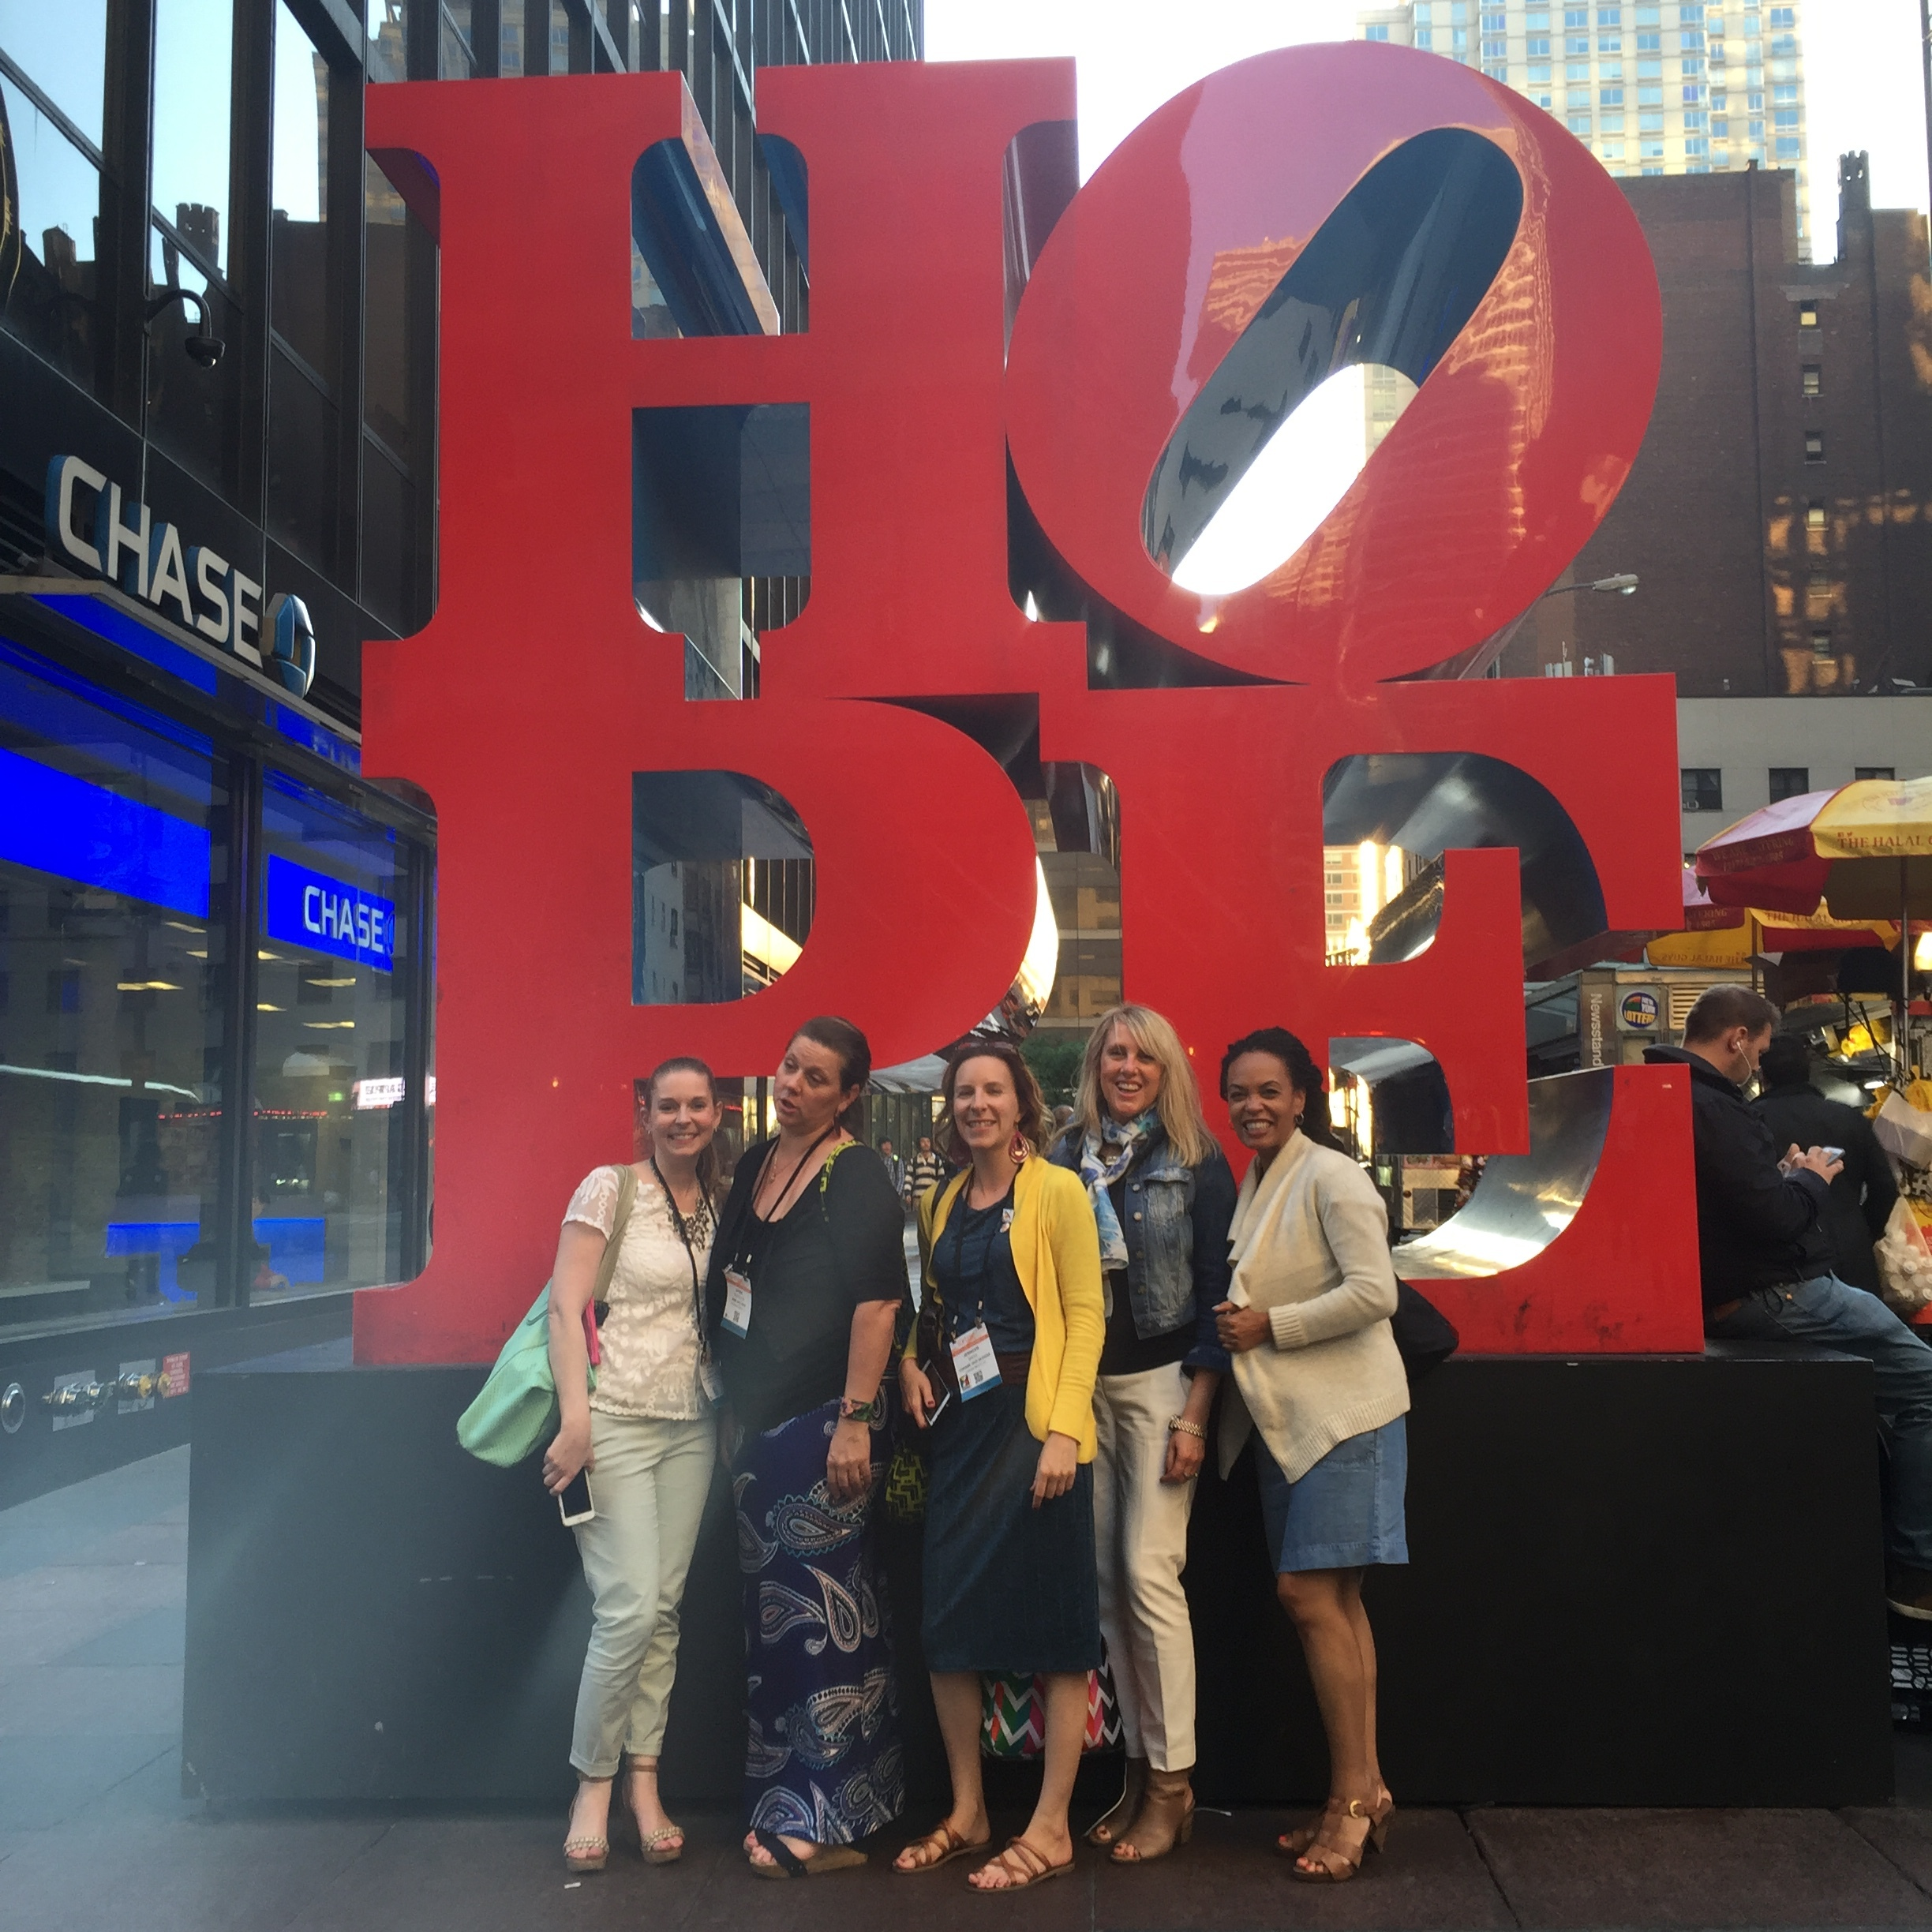 Seeing the sites in NYC. Pictured: Nicole Tamarin, Dawn Bouteilier, Jenifer Speer, Corinne Haig and Jeanetta Gonzales.